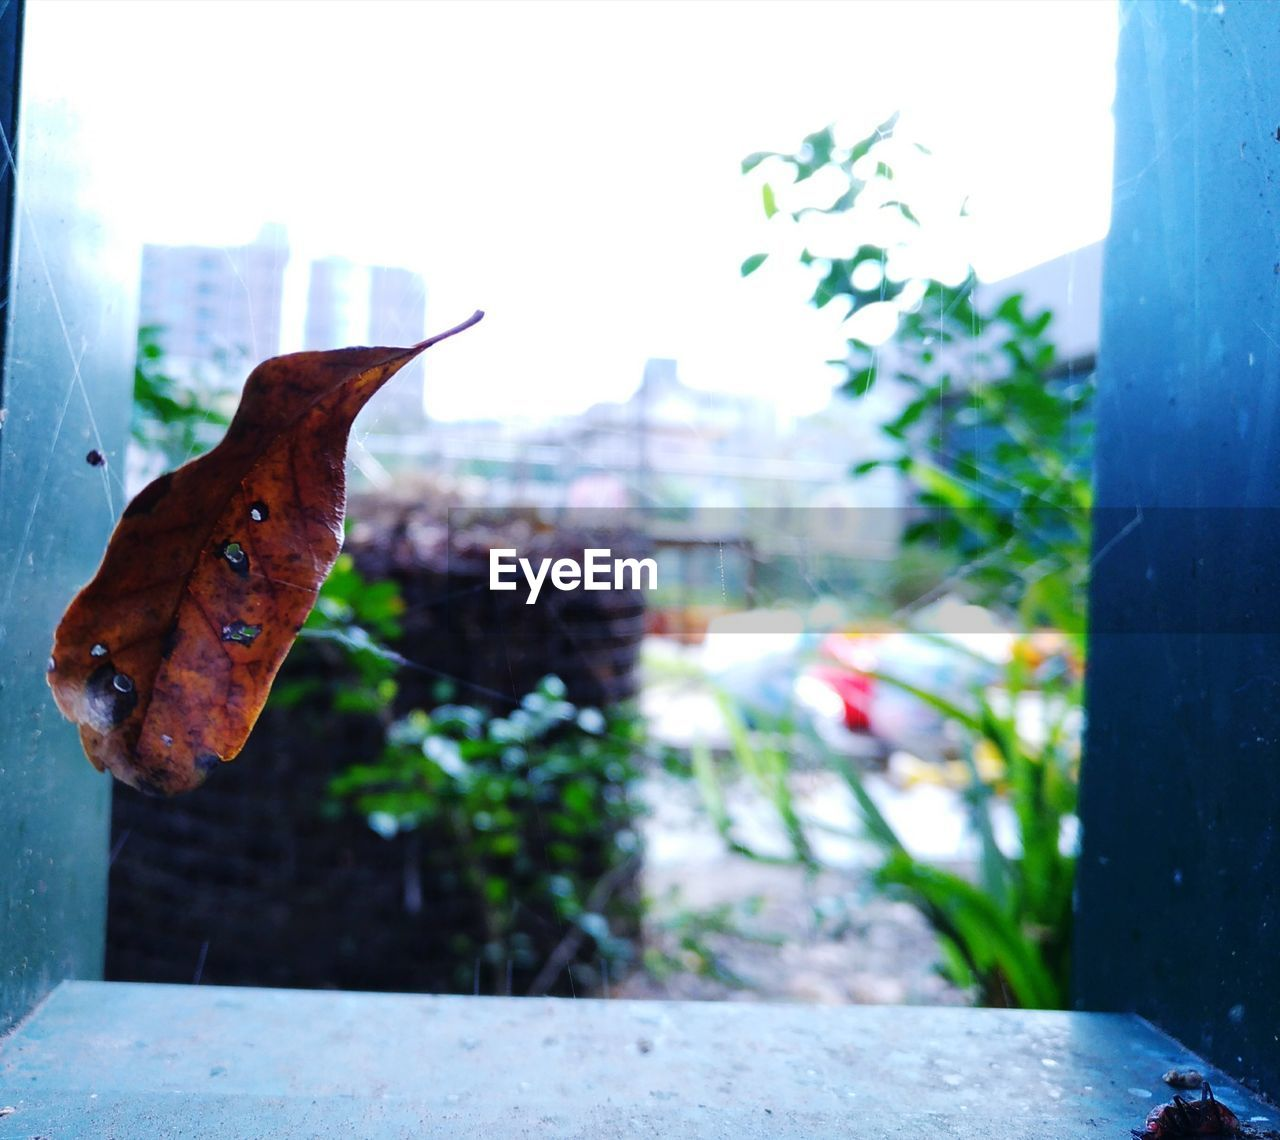 leaf, focus on foreground, day, no people, outdoors, one animal, close-up, nature, animal themes, growth, fragility, freshness